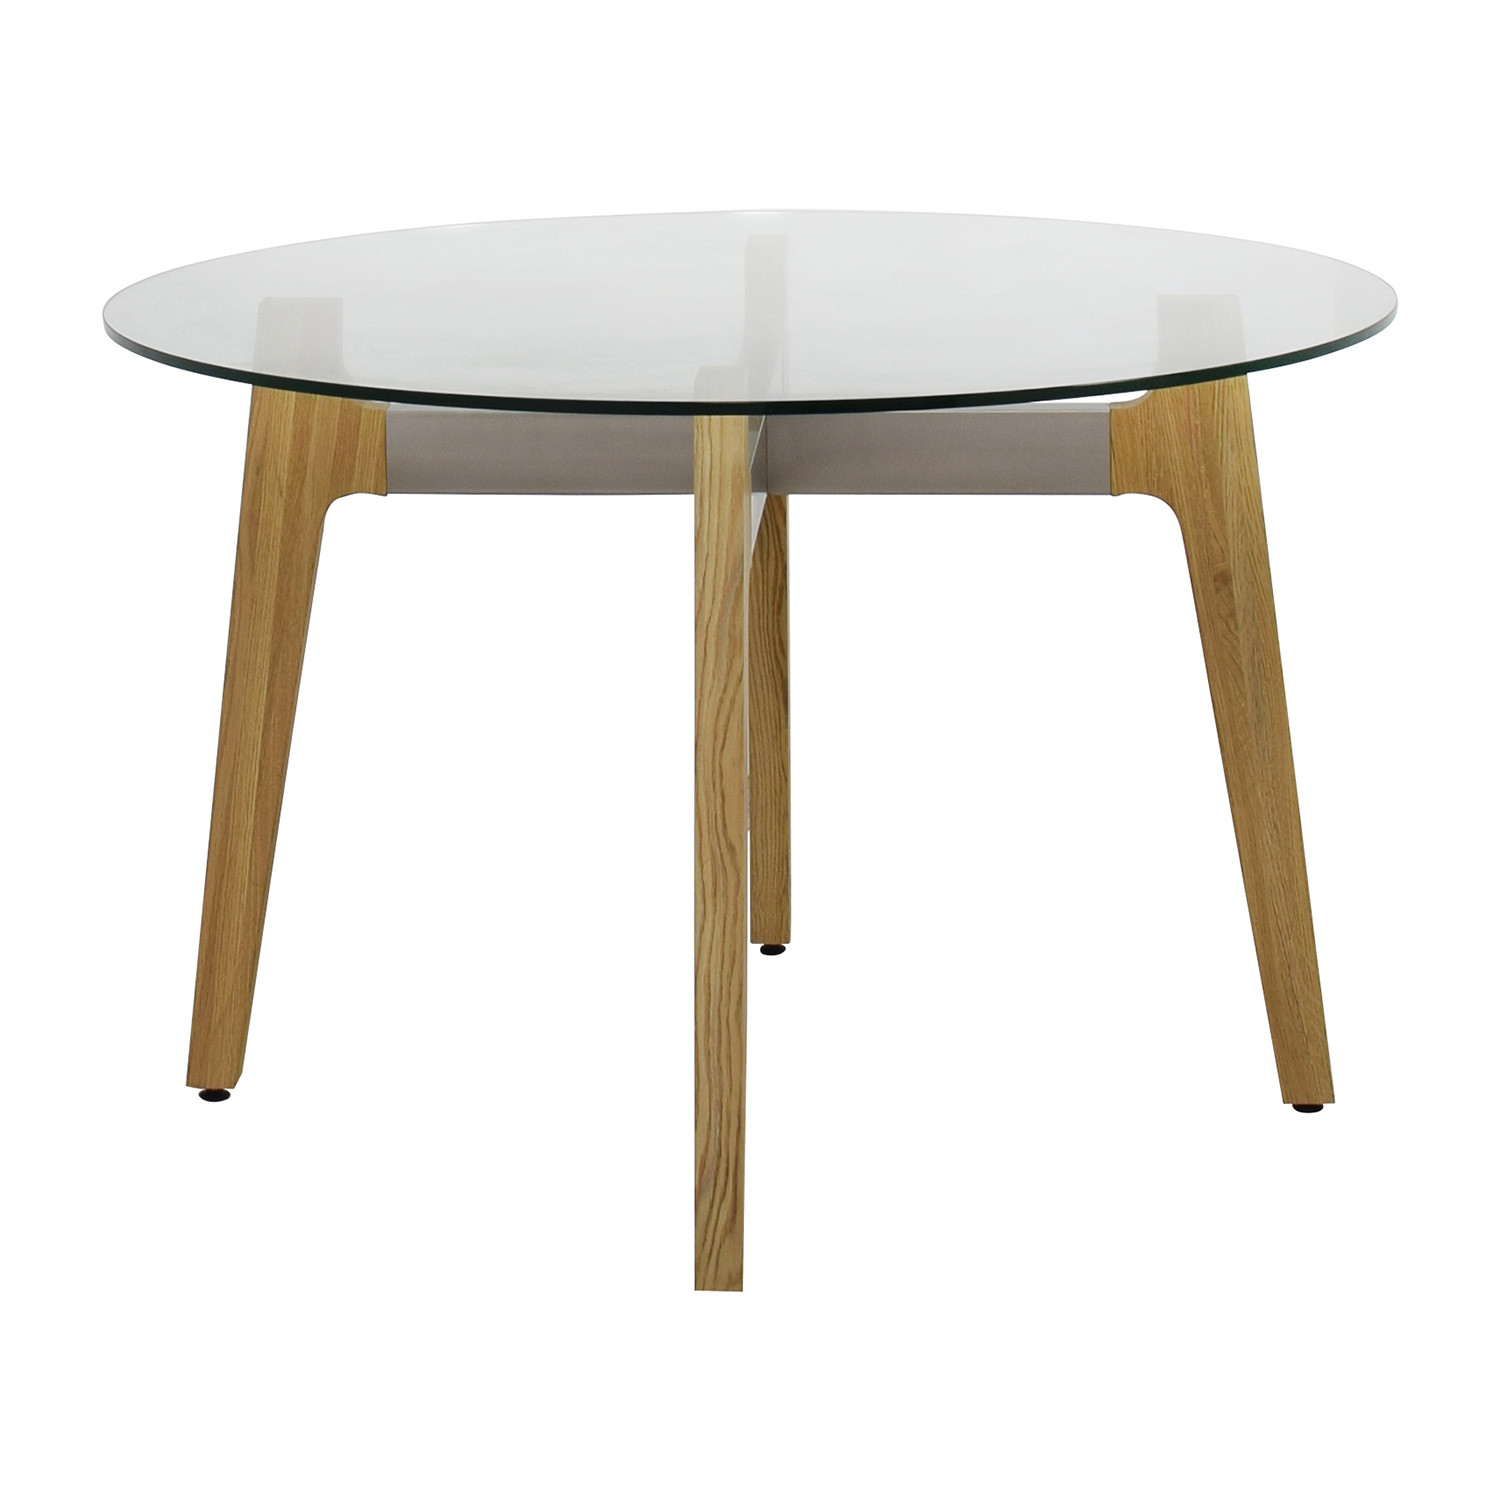 Best ideas about Cb2 Dining Table . Save or Pin OFF CB2 CB2 Round Brace Dining Table Tables Now.